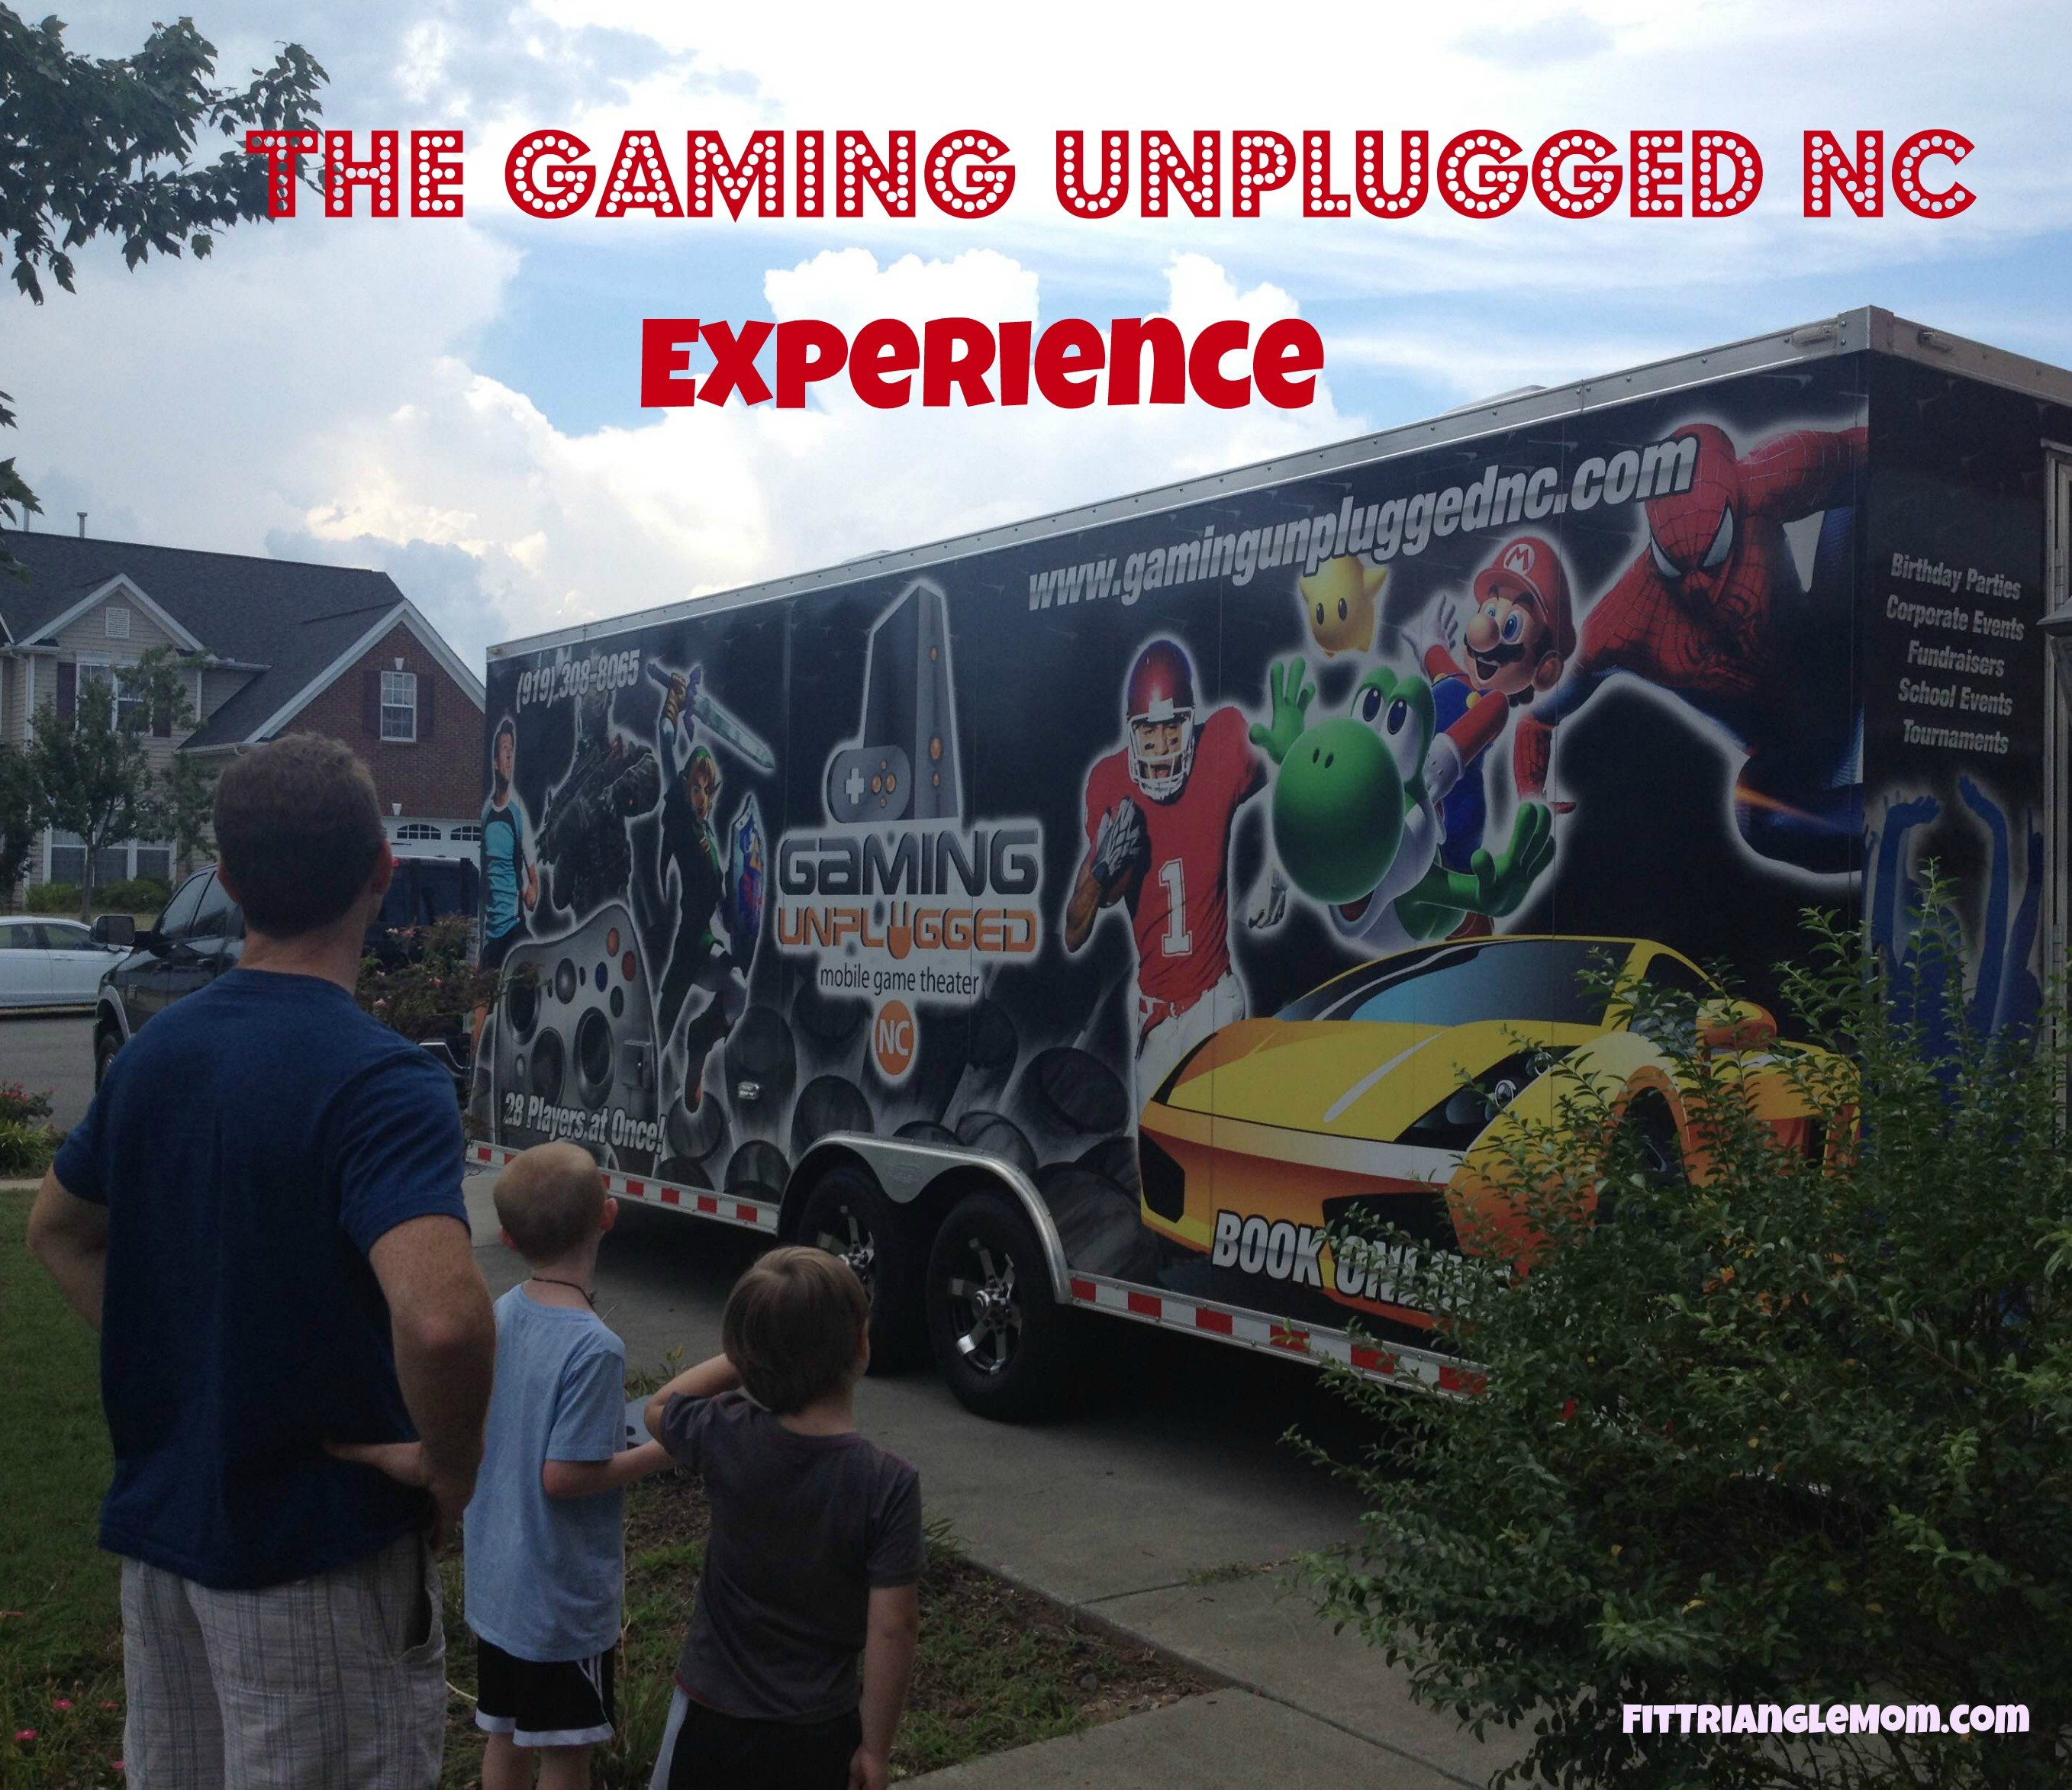 2016. Gaming Unplugged NC is the ultimate video game truck for birthdays or any fun event